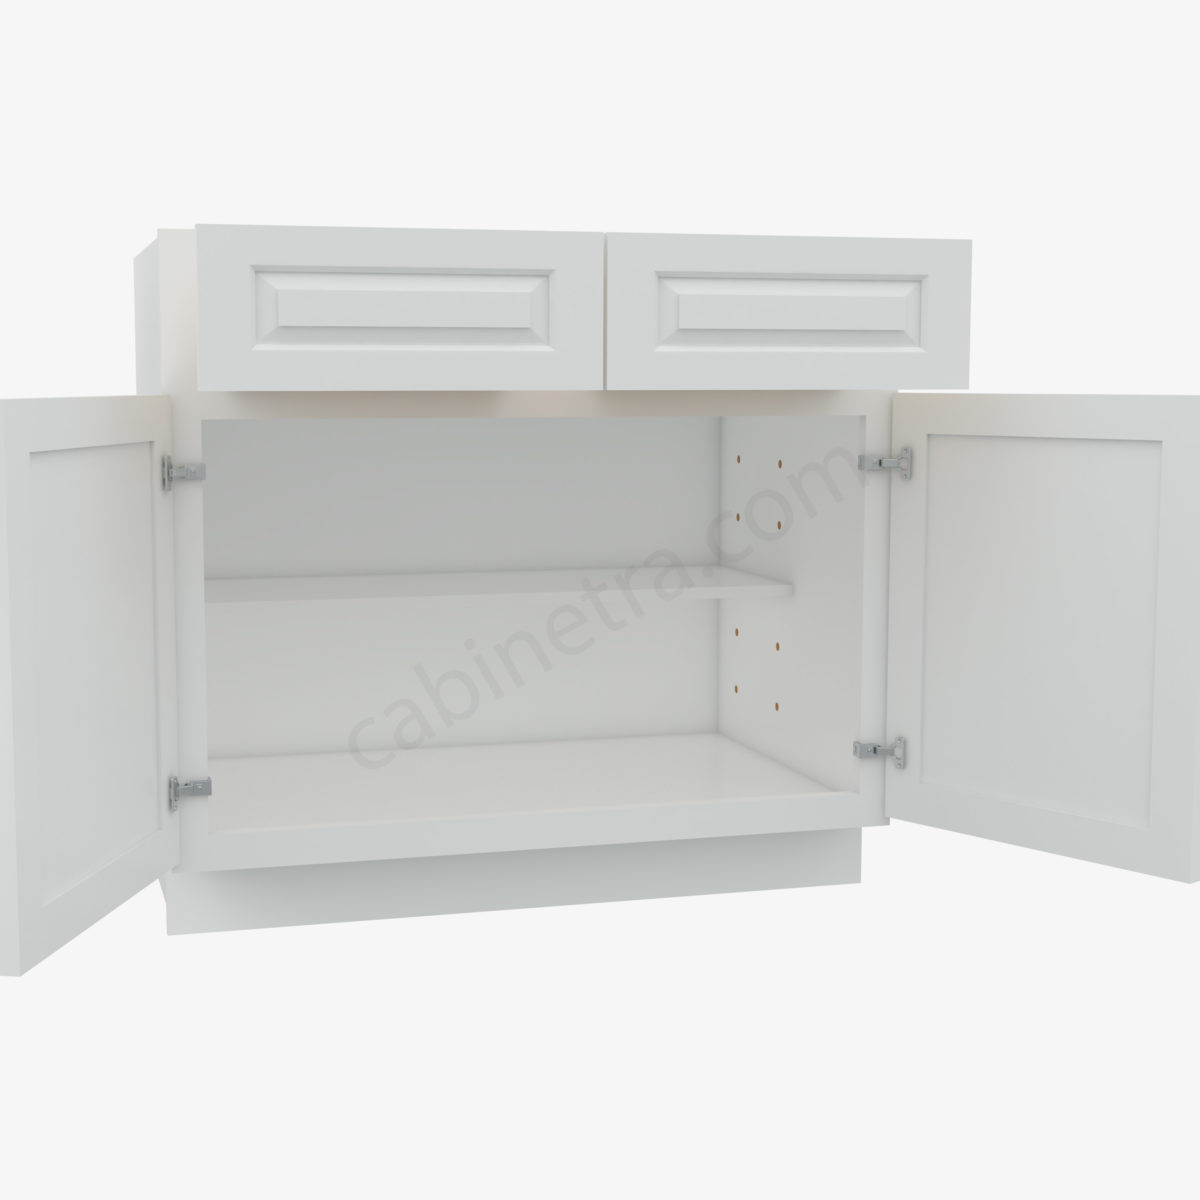 GW B36B 1  Forevermark Gramercy White Cabinetra scaled